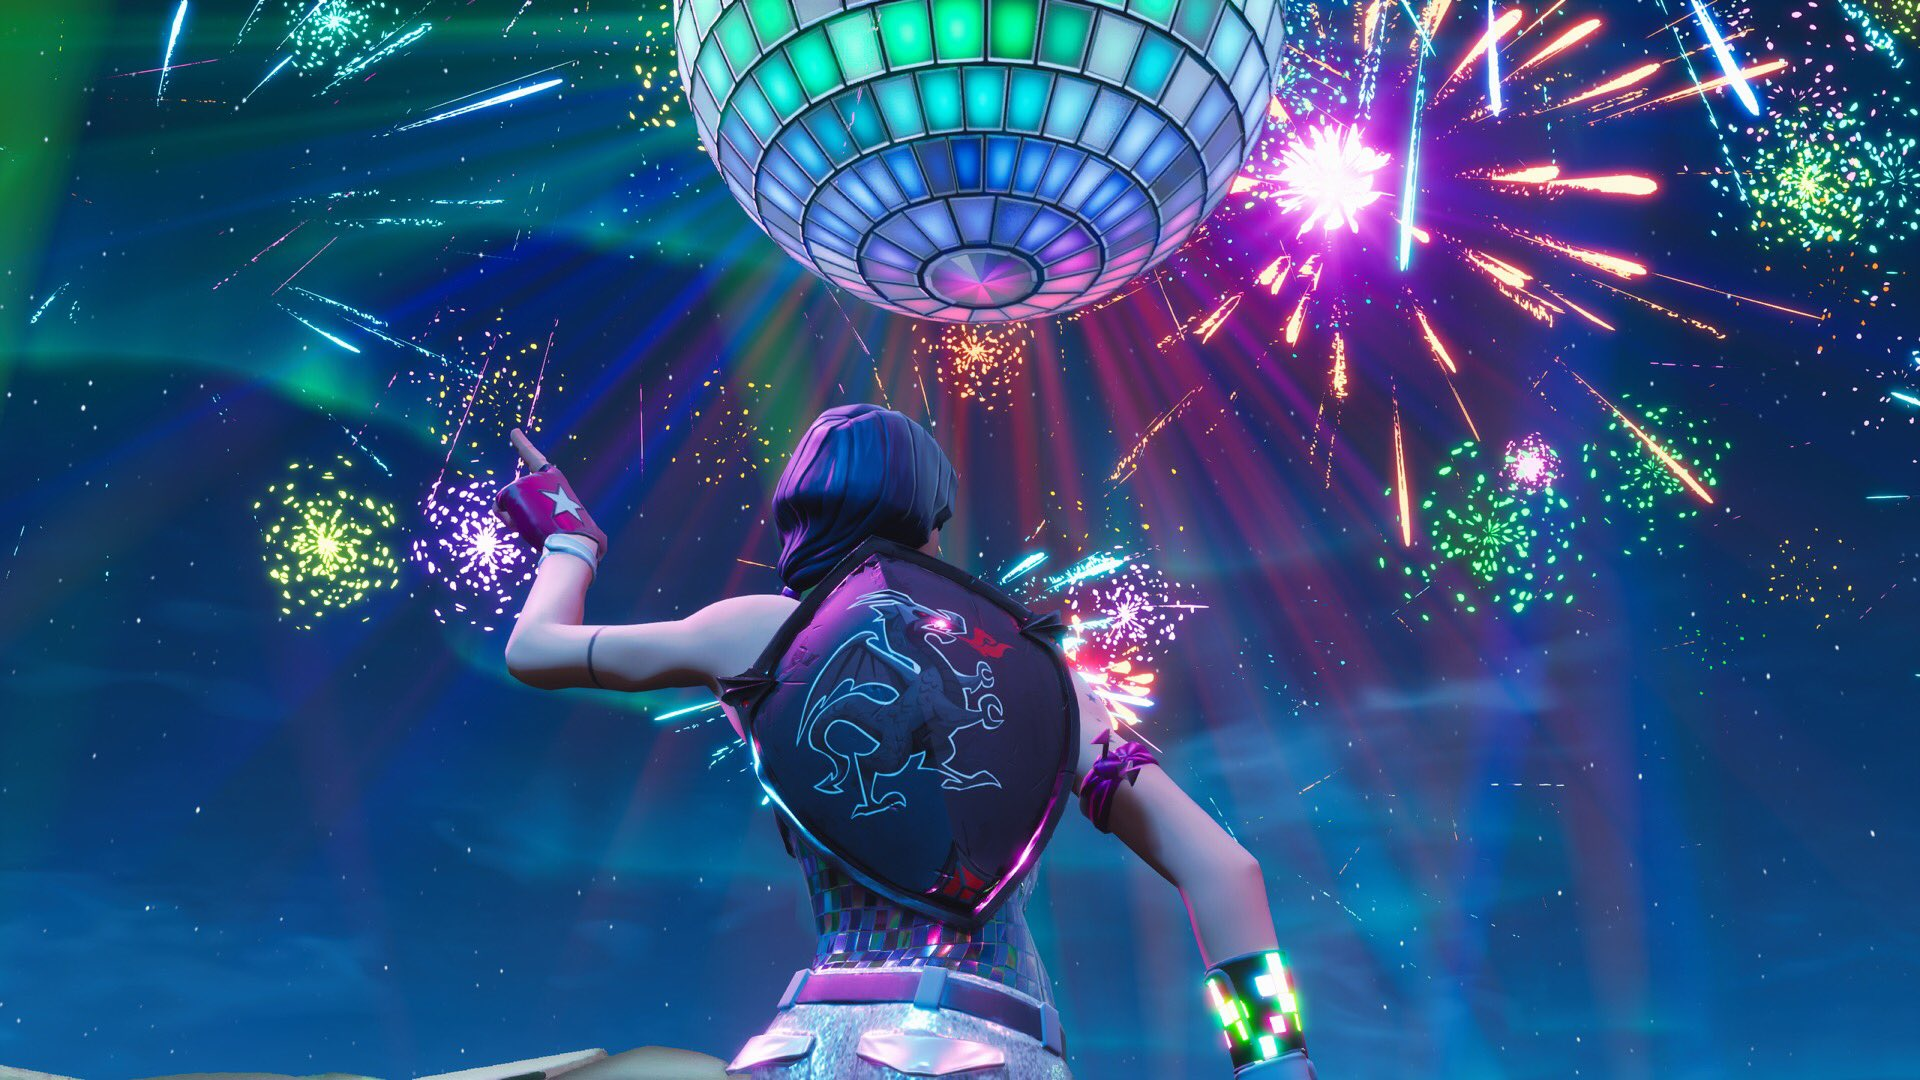 Fortnite Celebrates New Year's With a Special Hourly In-Game Event